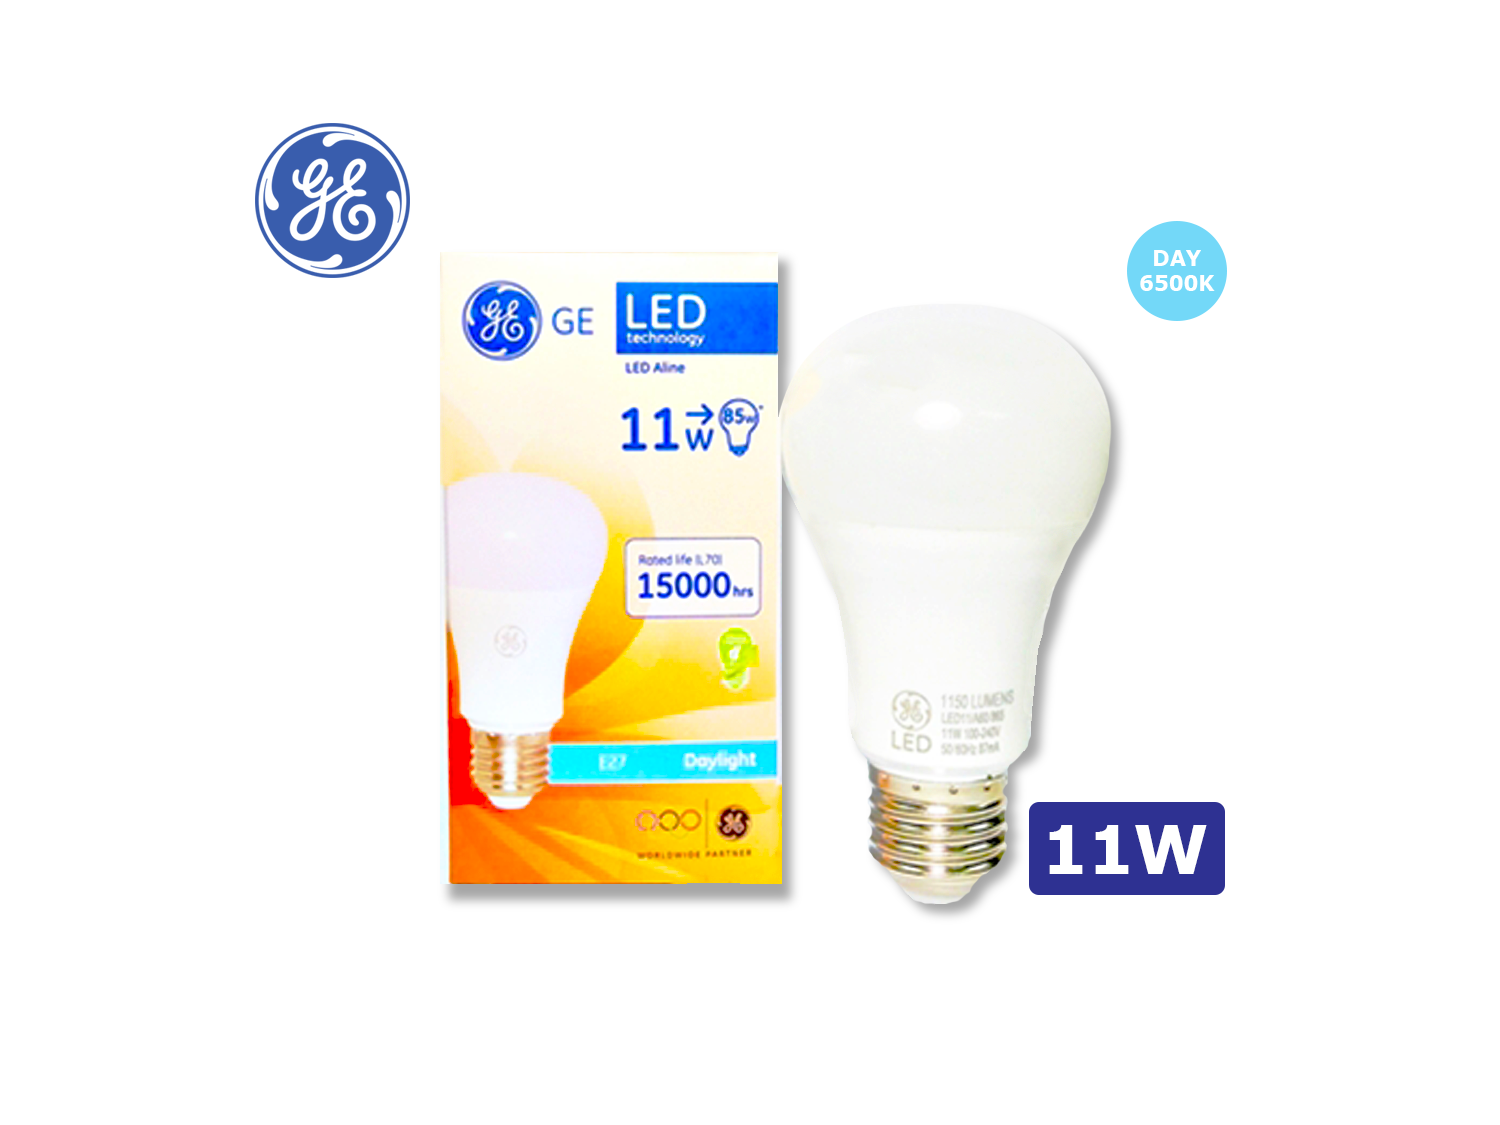 GE LED A60/11W/E27/ุ6500K(Daylight)/100-240V ; SKU : 74988BT, LED11/A60/865/100-240V/E27